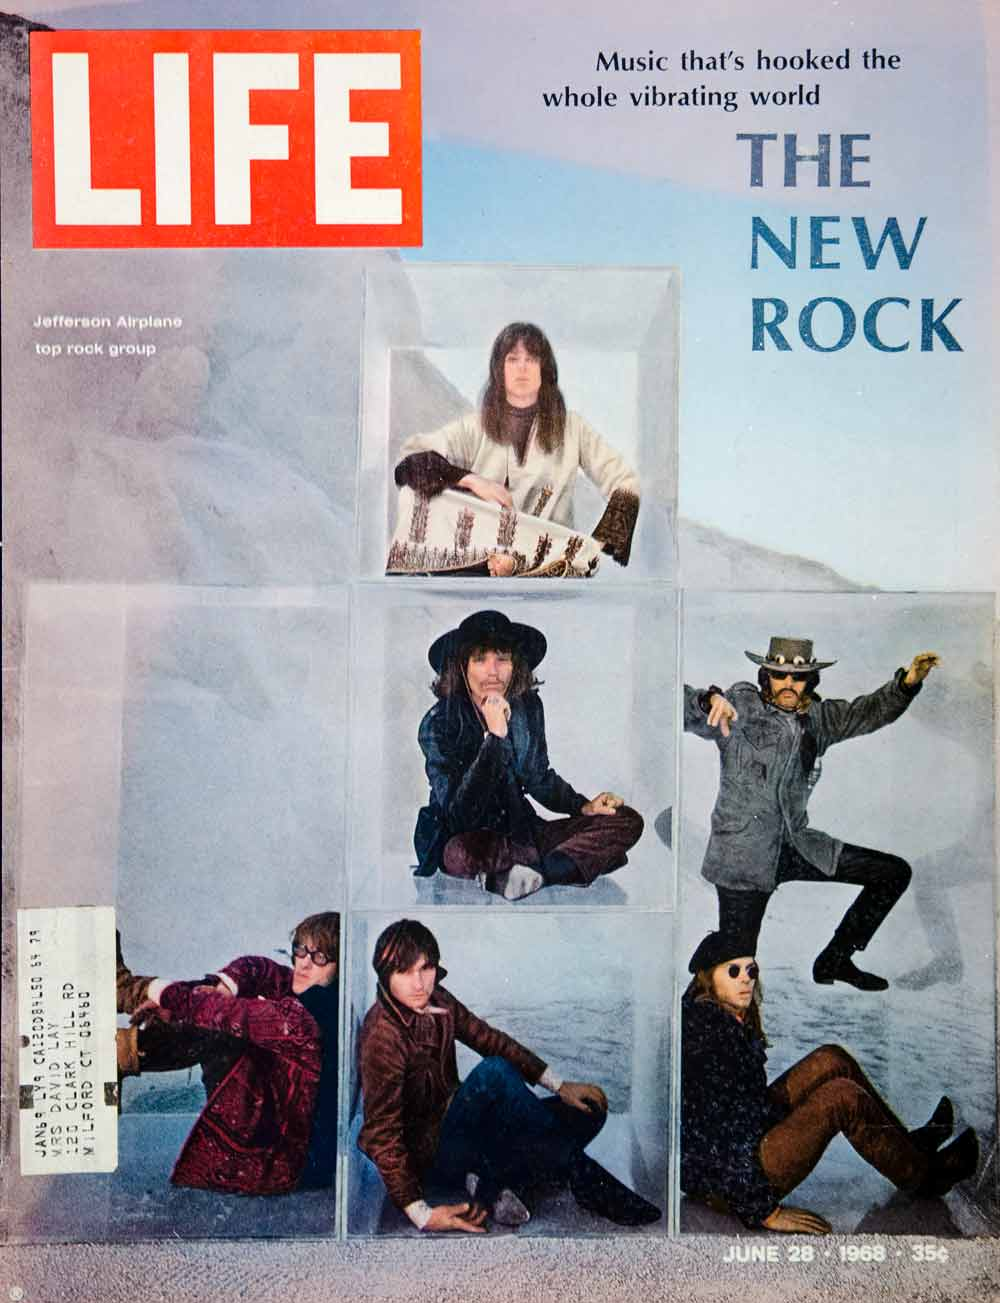 Rock Music Cover 1968 Cover Life Magazine Jefferson Airplane Grace Slick Rock Music Band Ylmc2